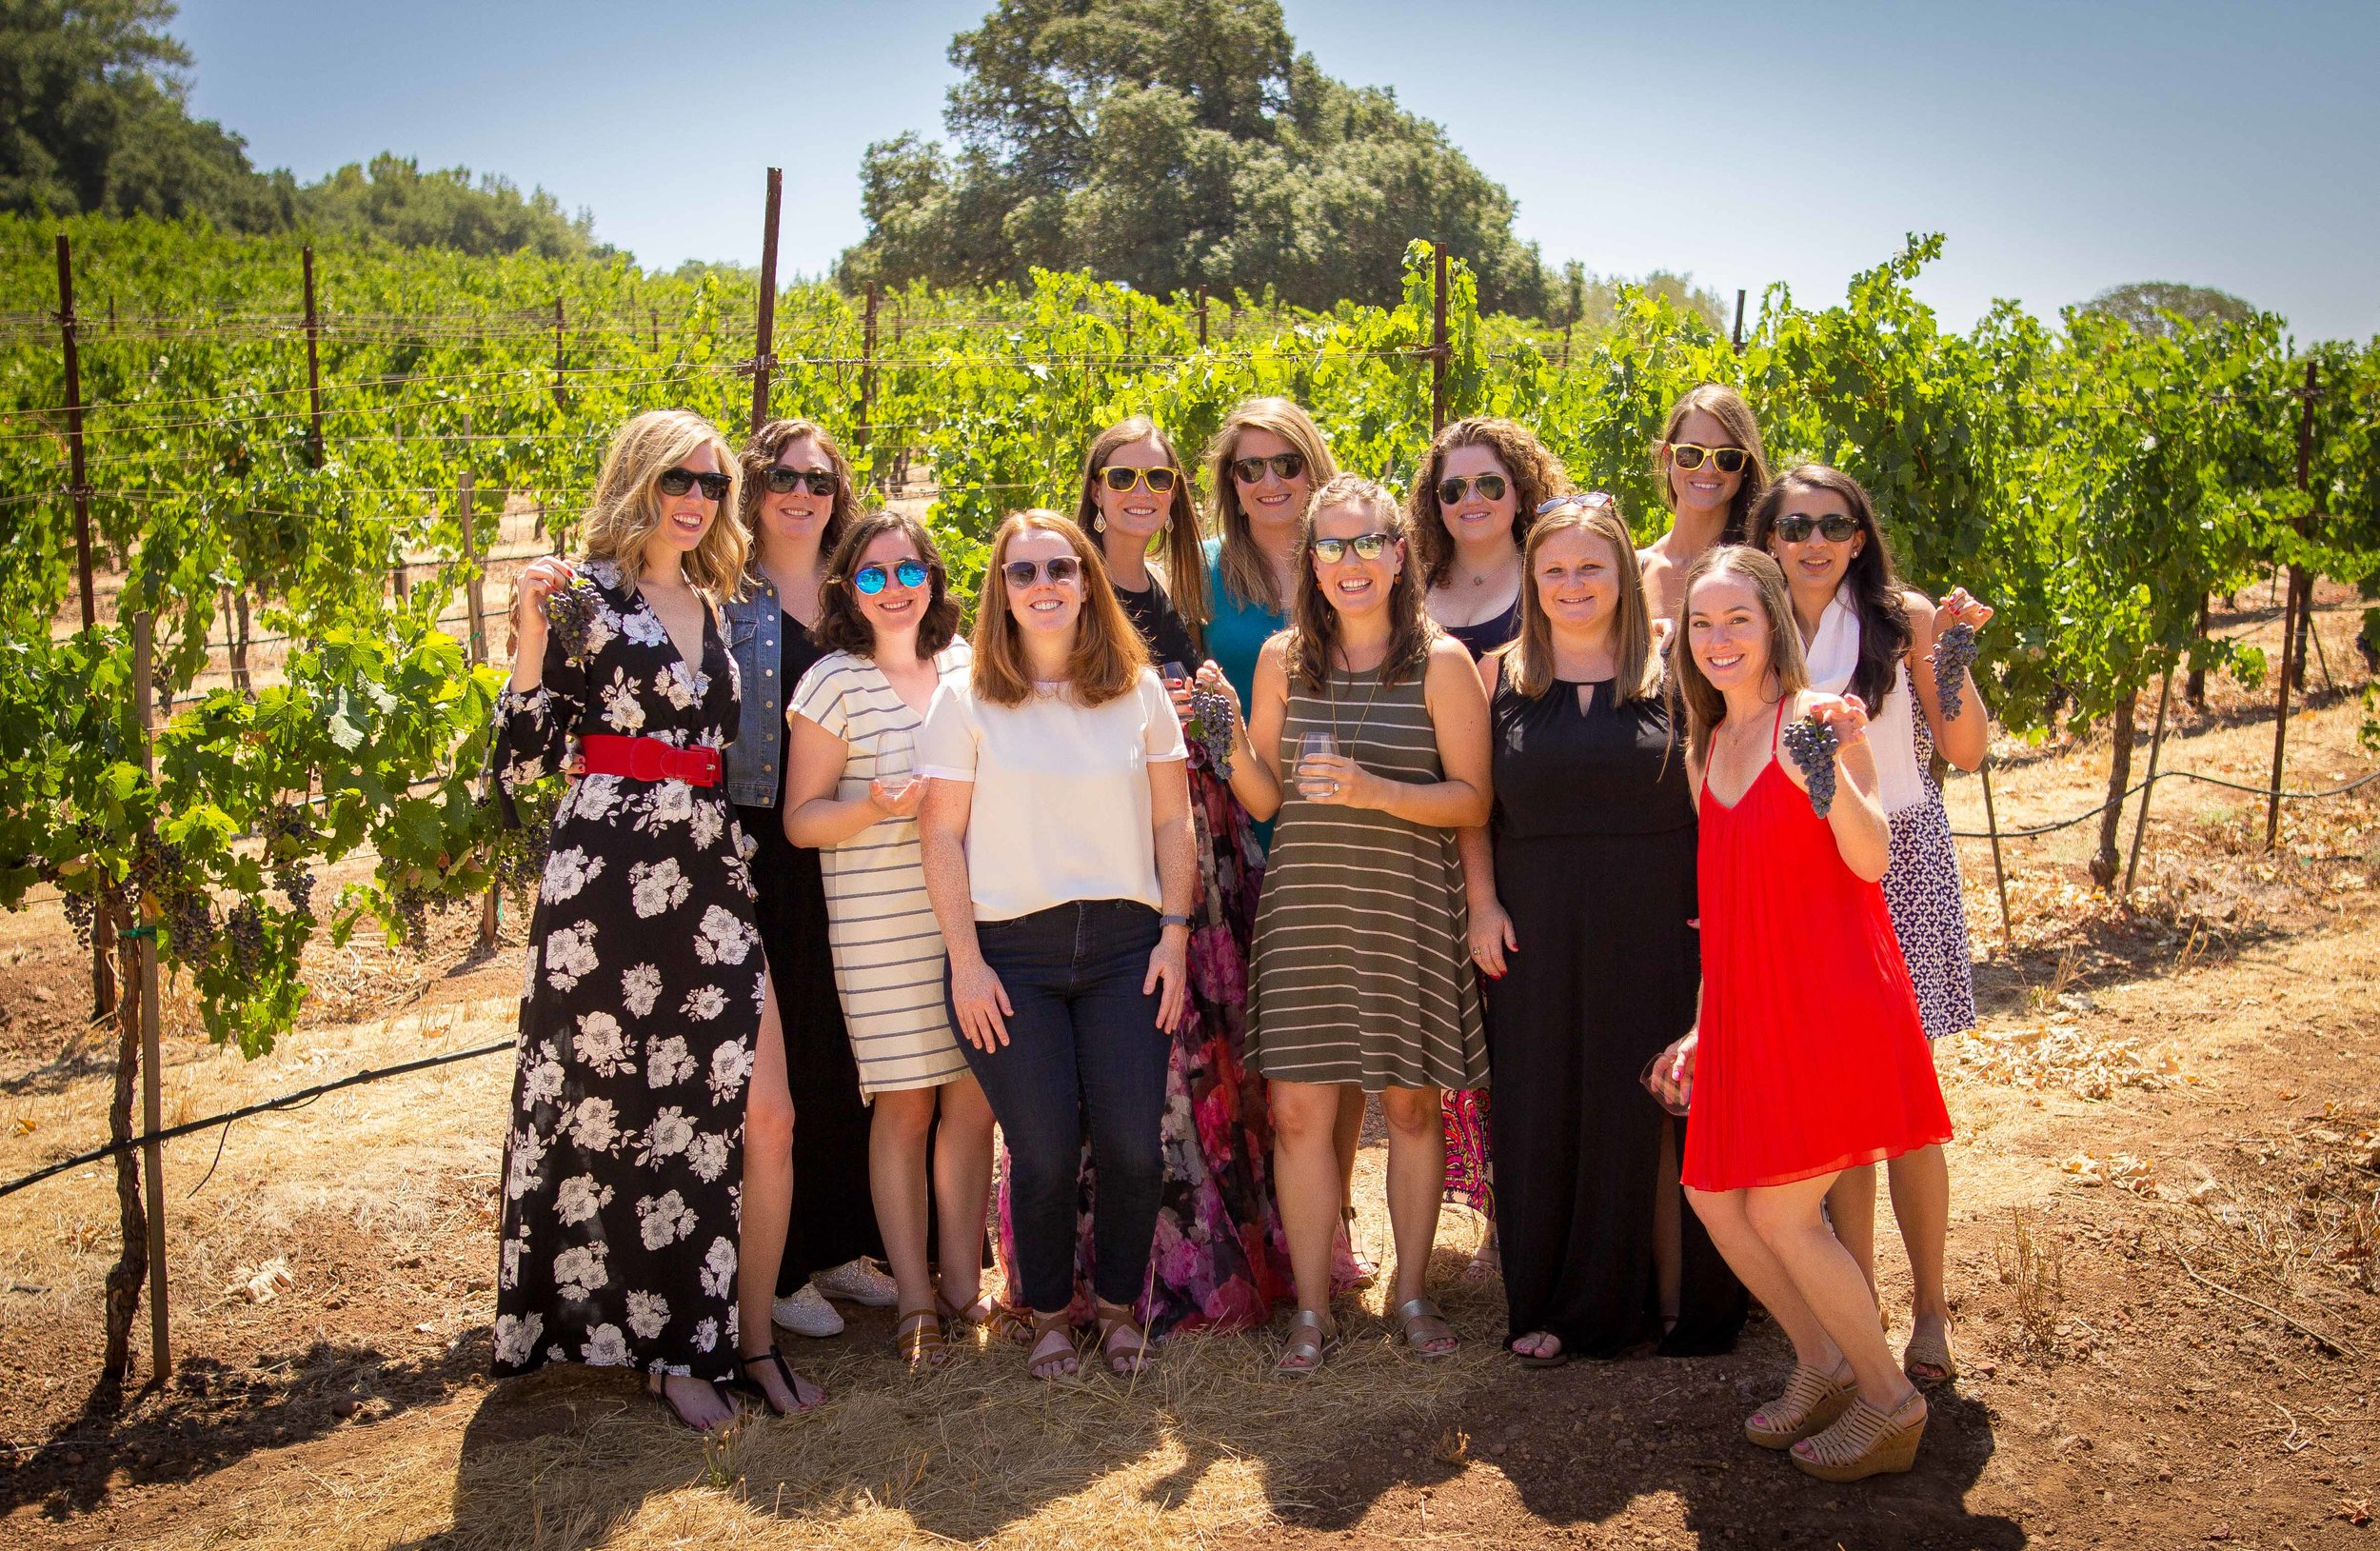 The whole group in the vineyard